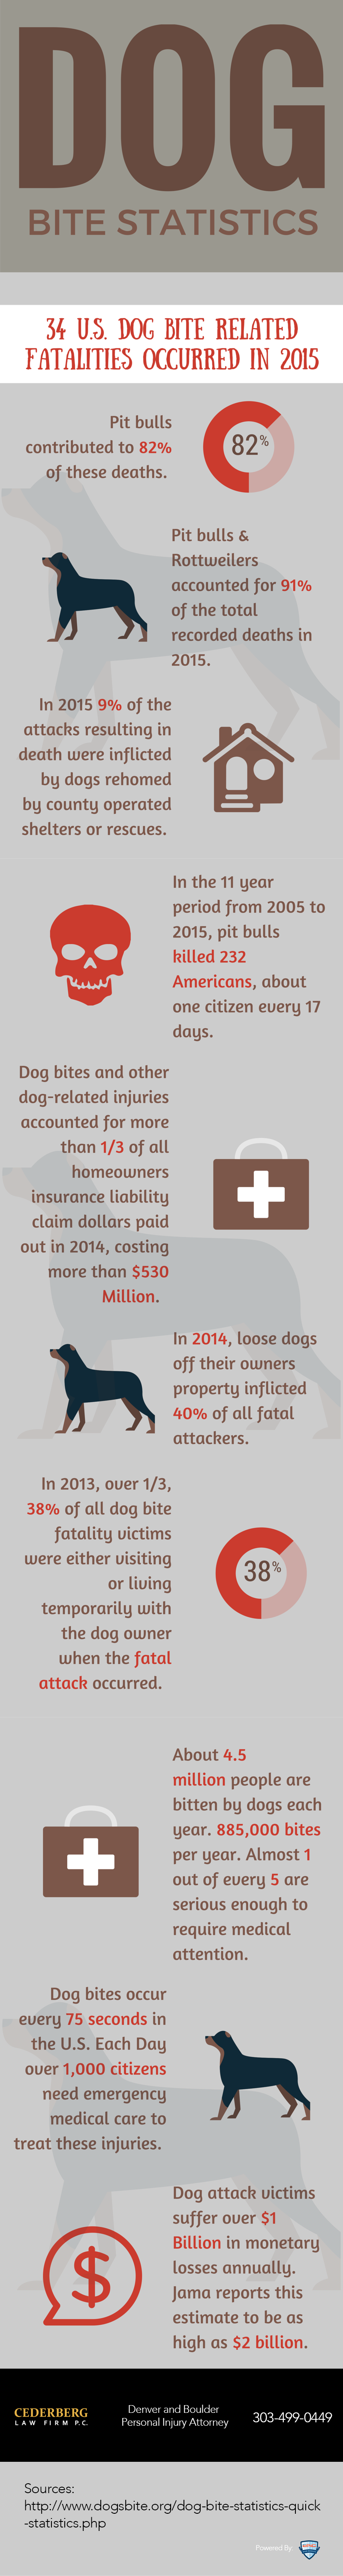 Important Facts about Dog Bites for National Dog Bite Prevention Week [Infographic]